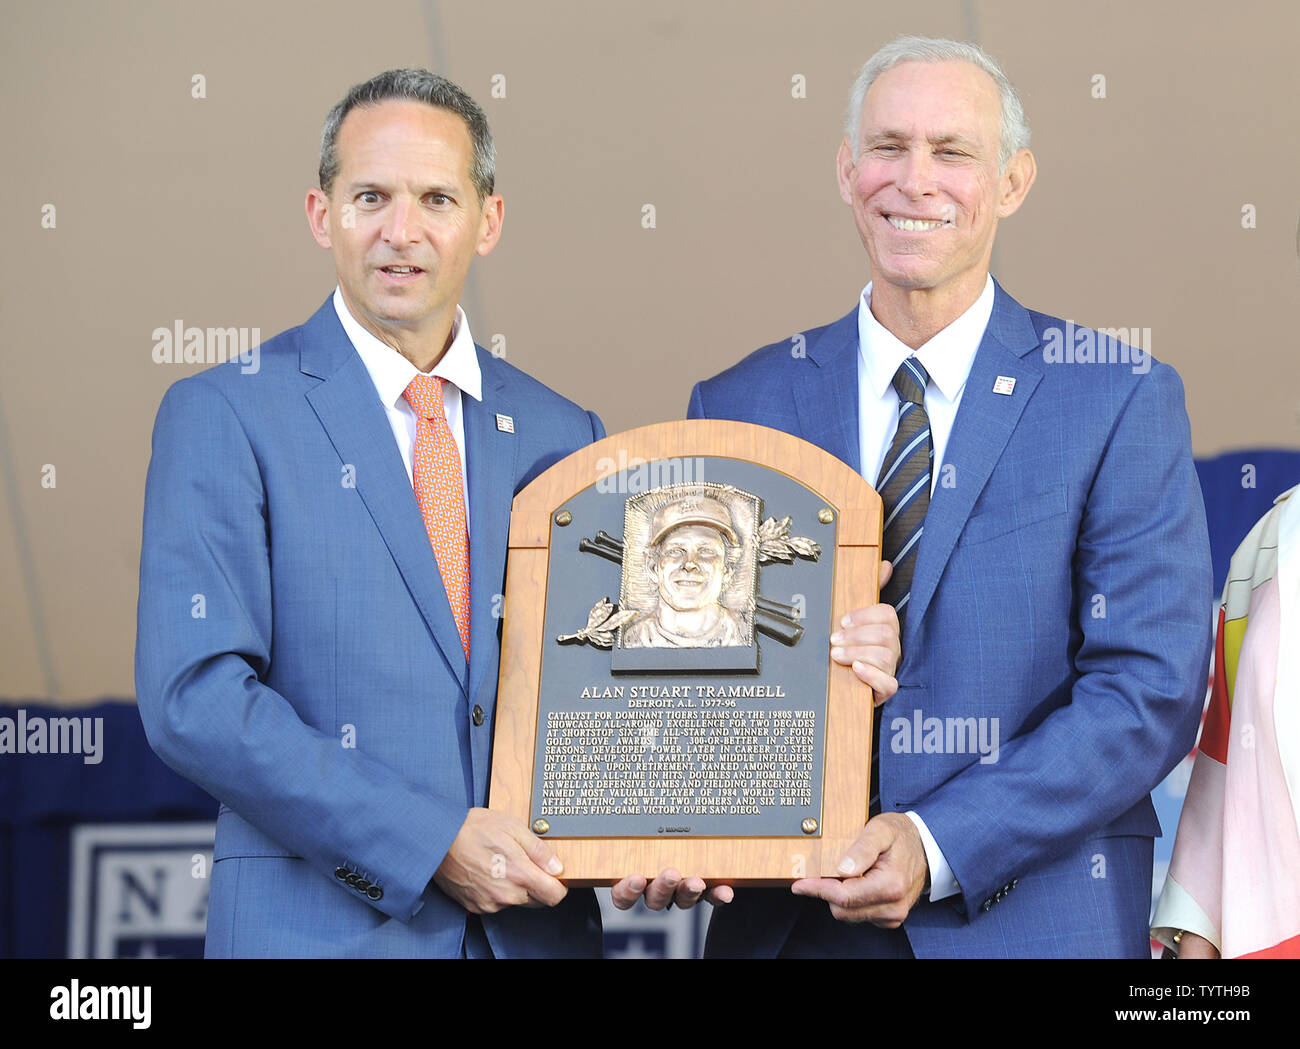 Alan Trammell  and President of the Baseball Hall of Fame Jeff Idelson holds his plaque before he his Baseball Hall of Fame induction speech at the Clark Sports Center in Cooperstown, NY on July 29, 2018.  A record 60 Hall of Famers are scheduled to be in Central New York to honor Vladimir Guerrero, Trevor Hoffman, Chipper Jones, Jack Morris, Jim Thome and Alan Trammell at the National Baseball Hall of Fame and Museum during Hall of Fame Weekend on July 27-30.     Photo by George Napolitano/UPI - Stock Image